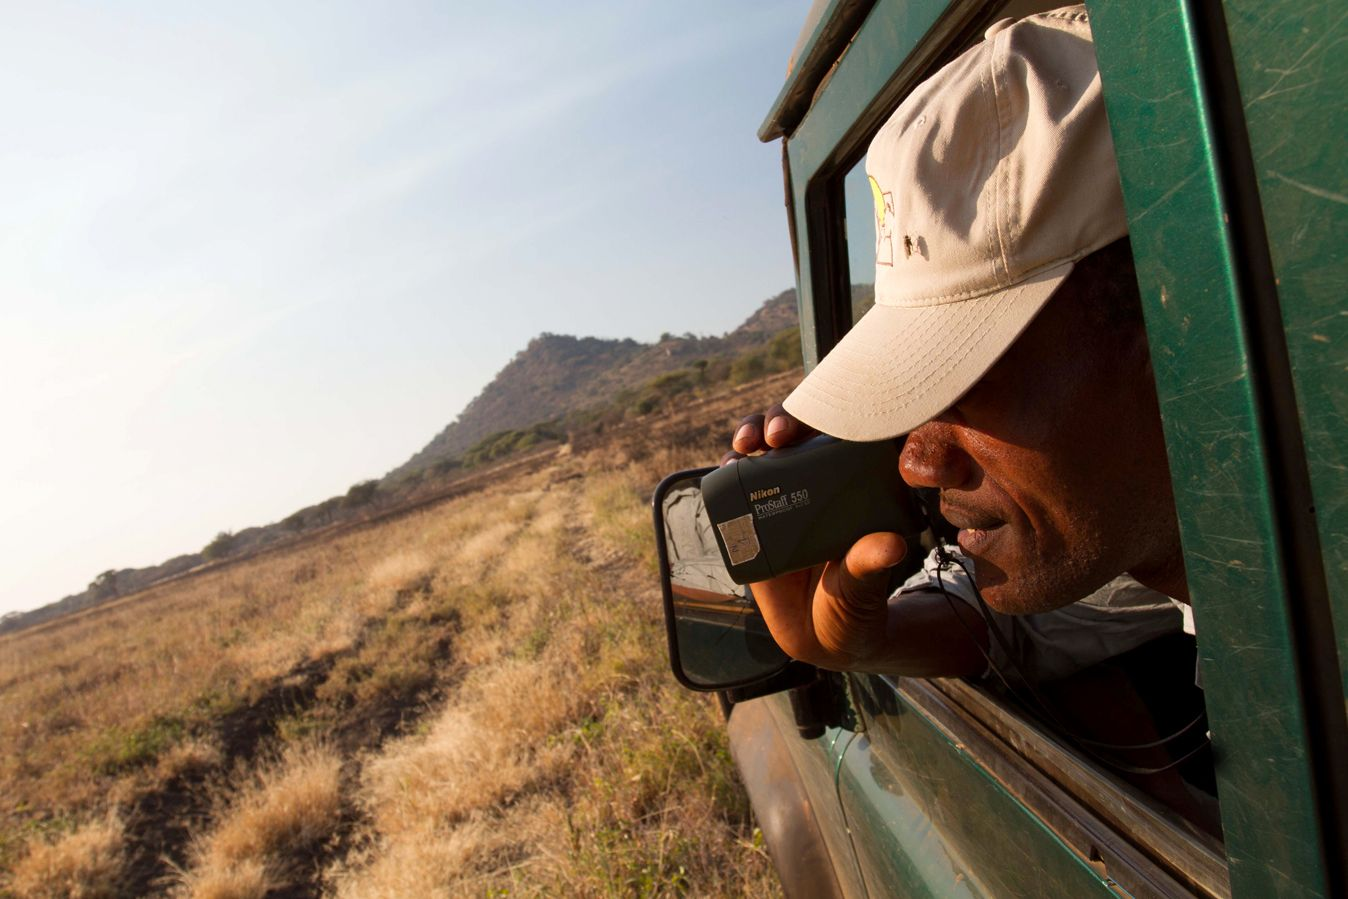 APW closely monitors local wildlife populations via bi-monthly counts.